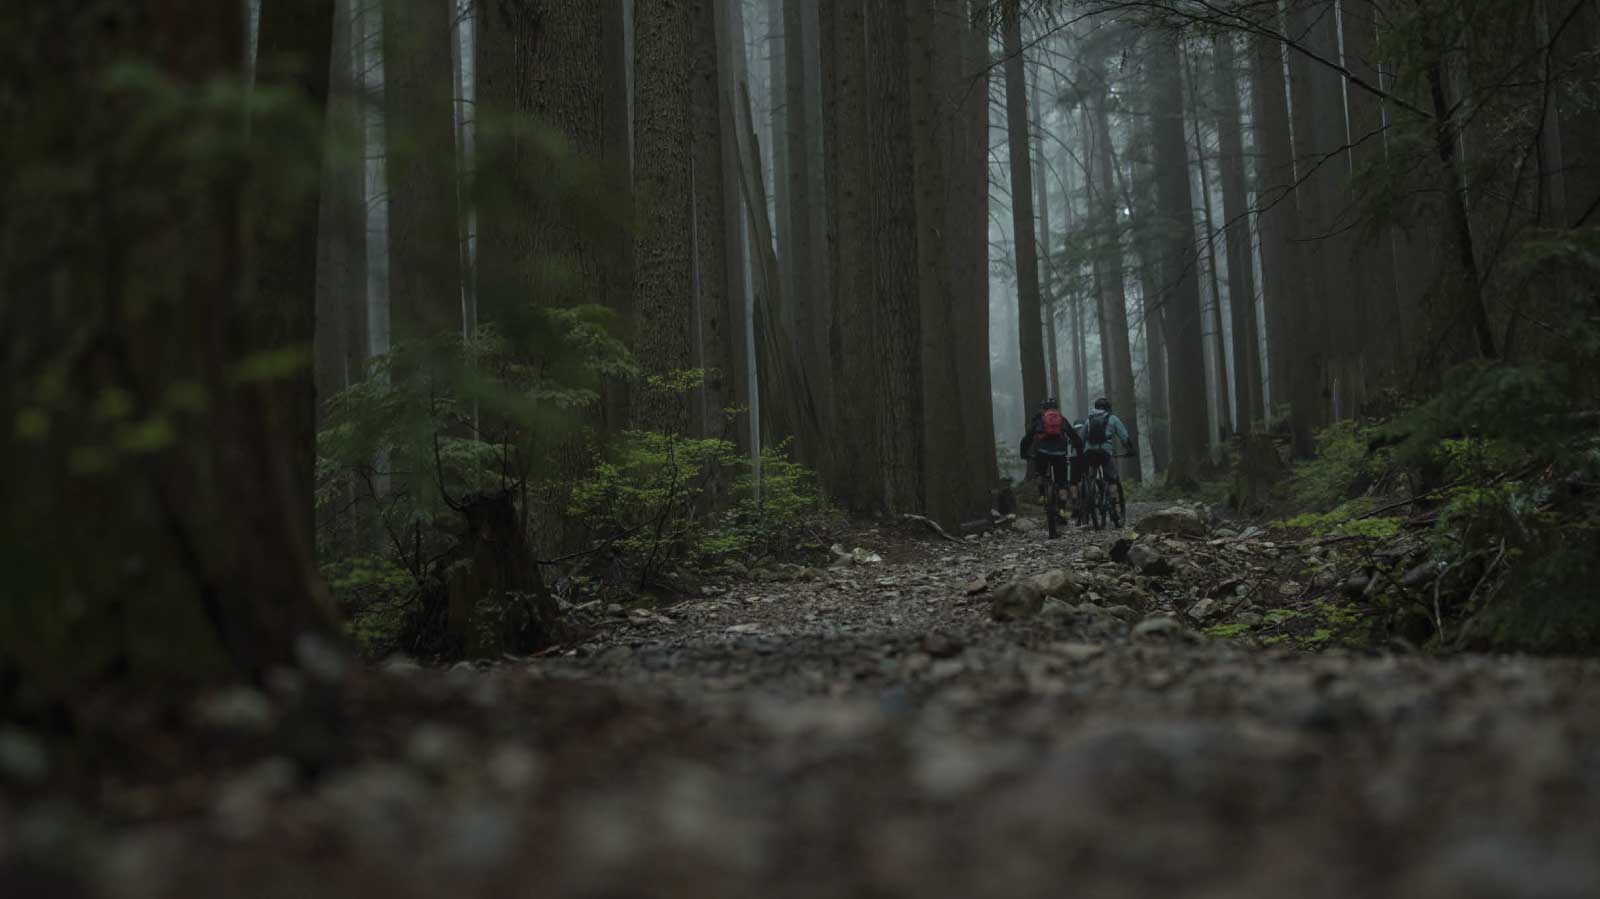 Bikes in a rainy forest